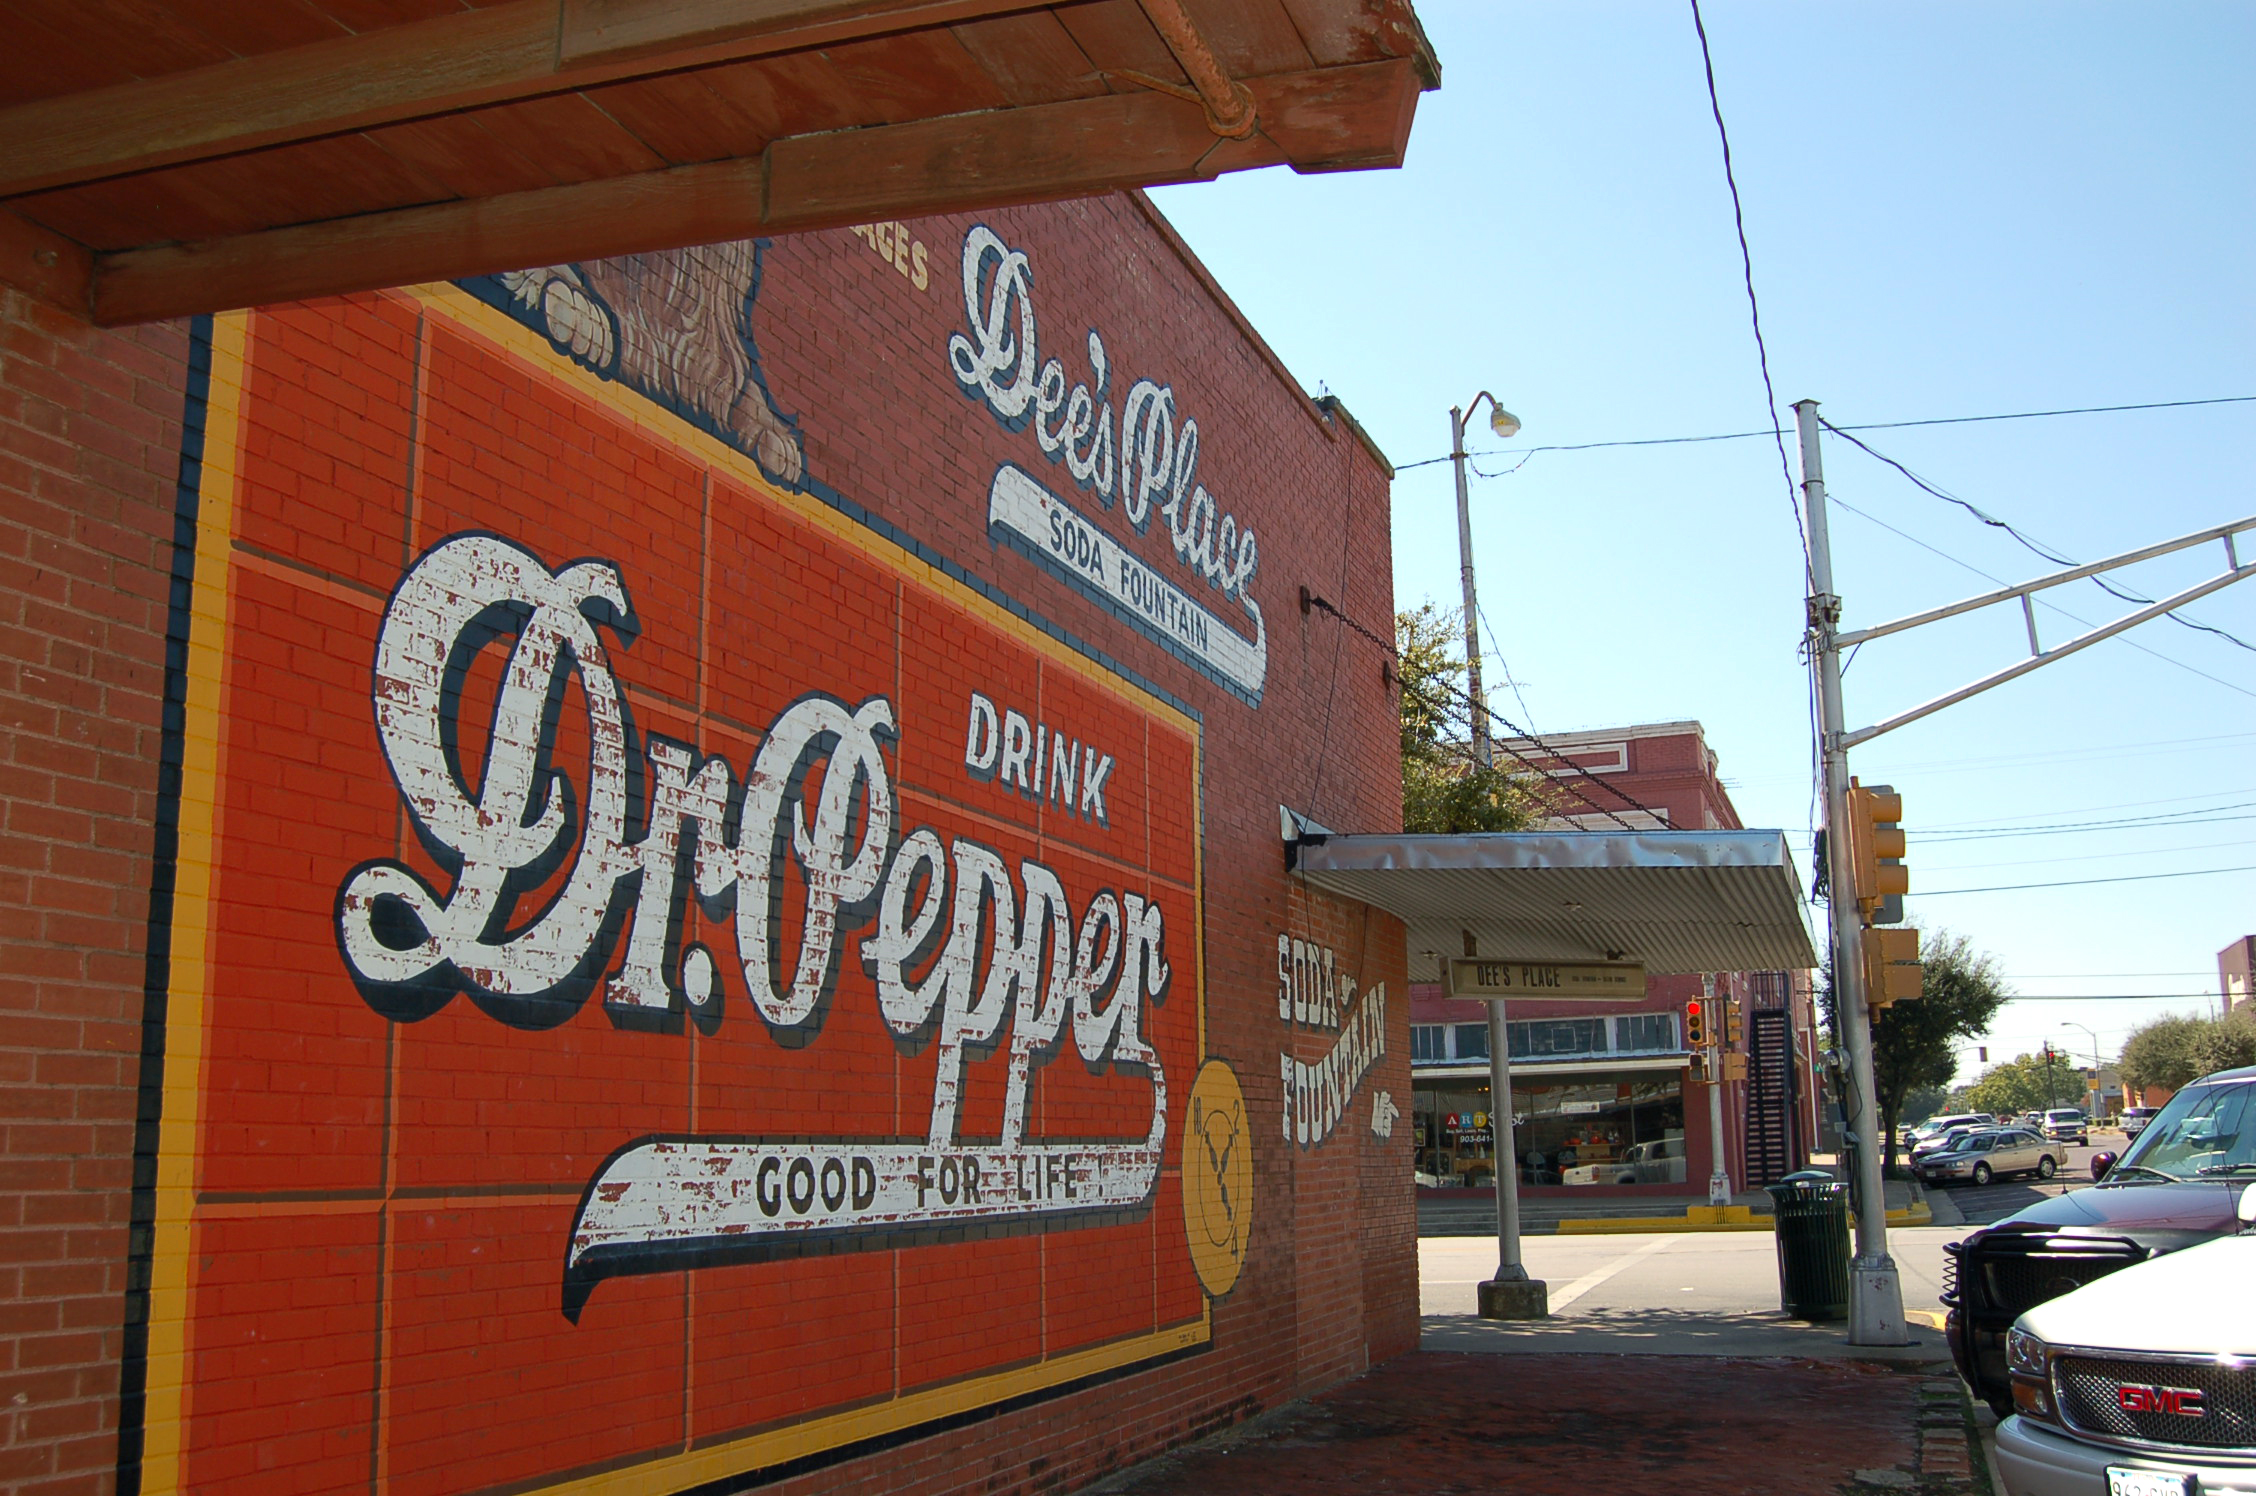 Dr. Pepper Mural at Dee's Place in Corsicana, TX